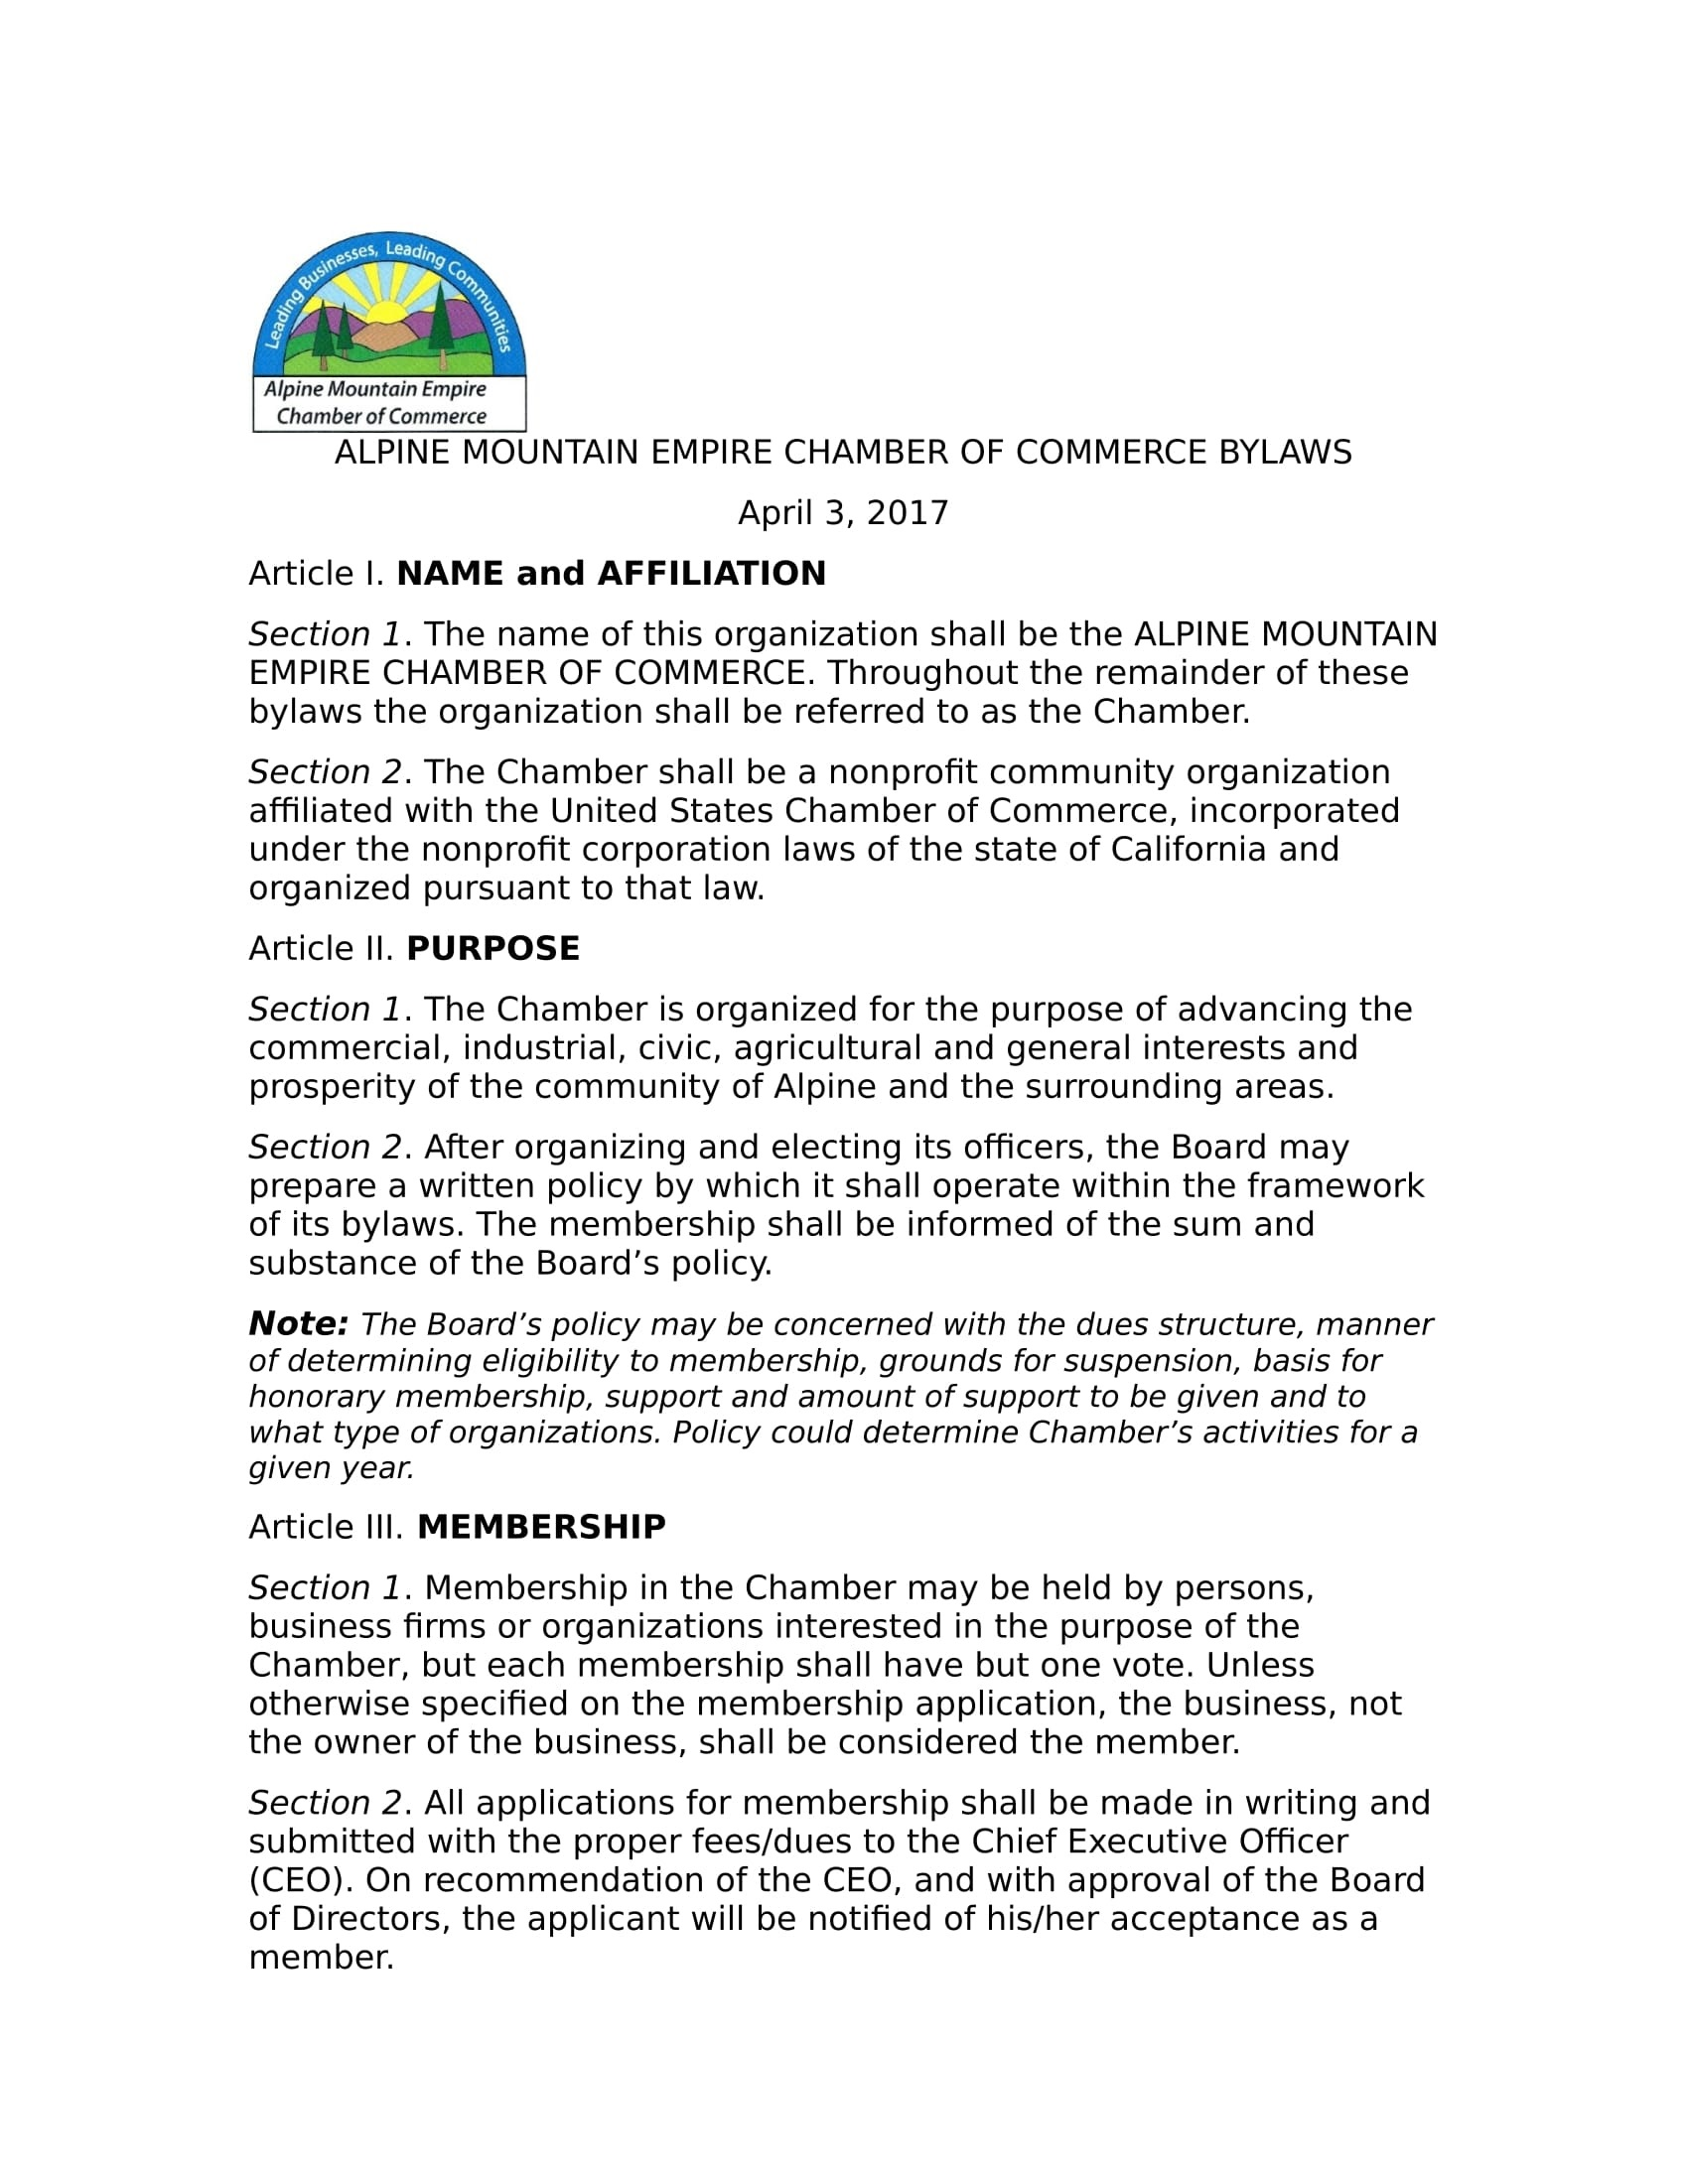 Chamber-By-Laws-Page-1-w1920.jpg